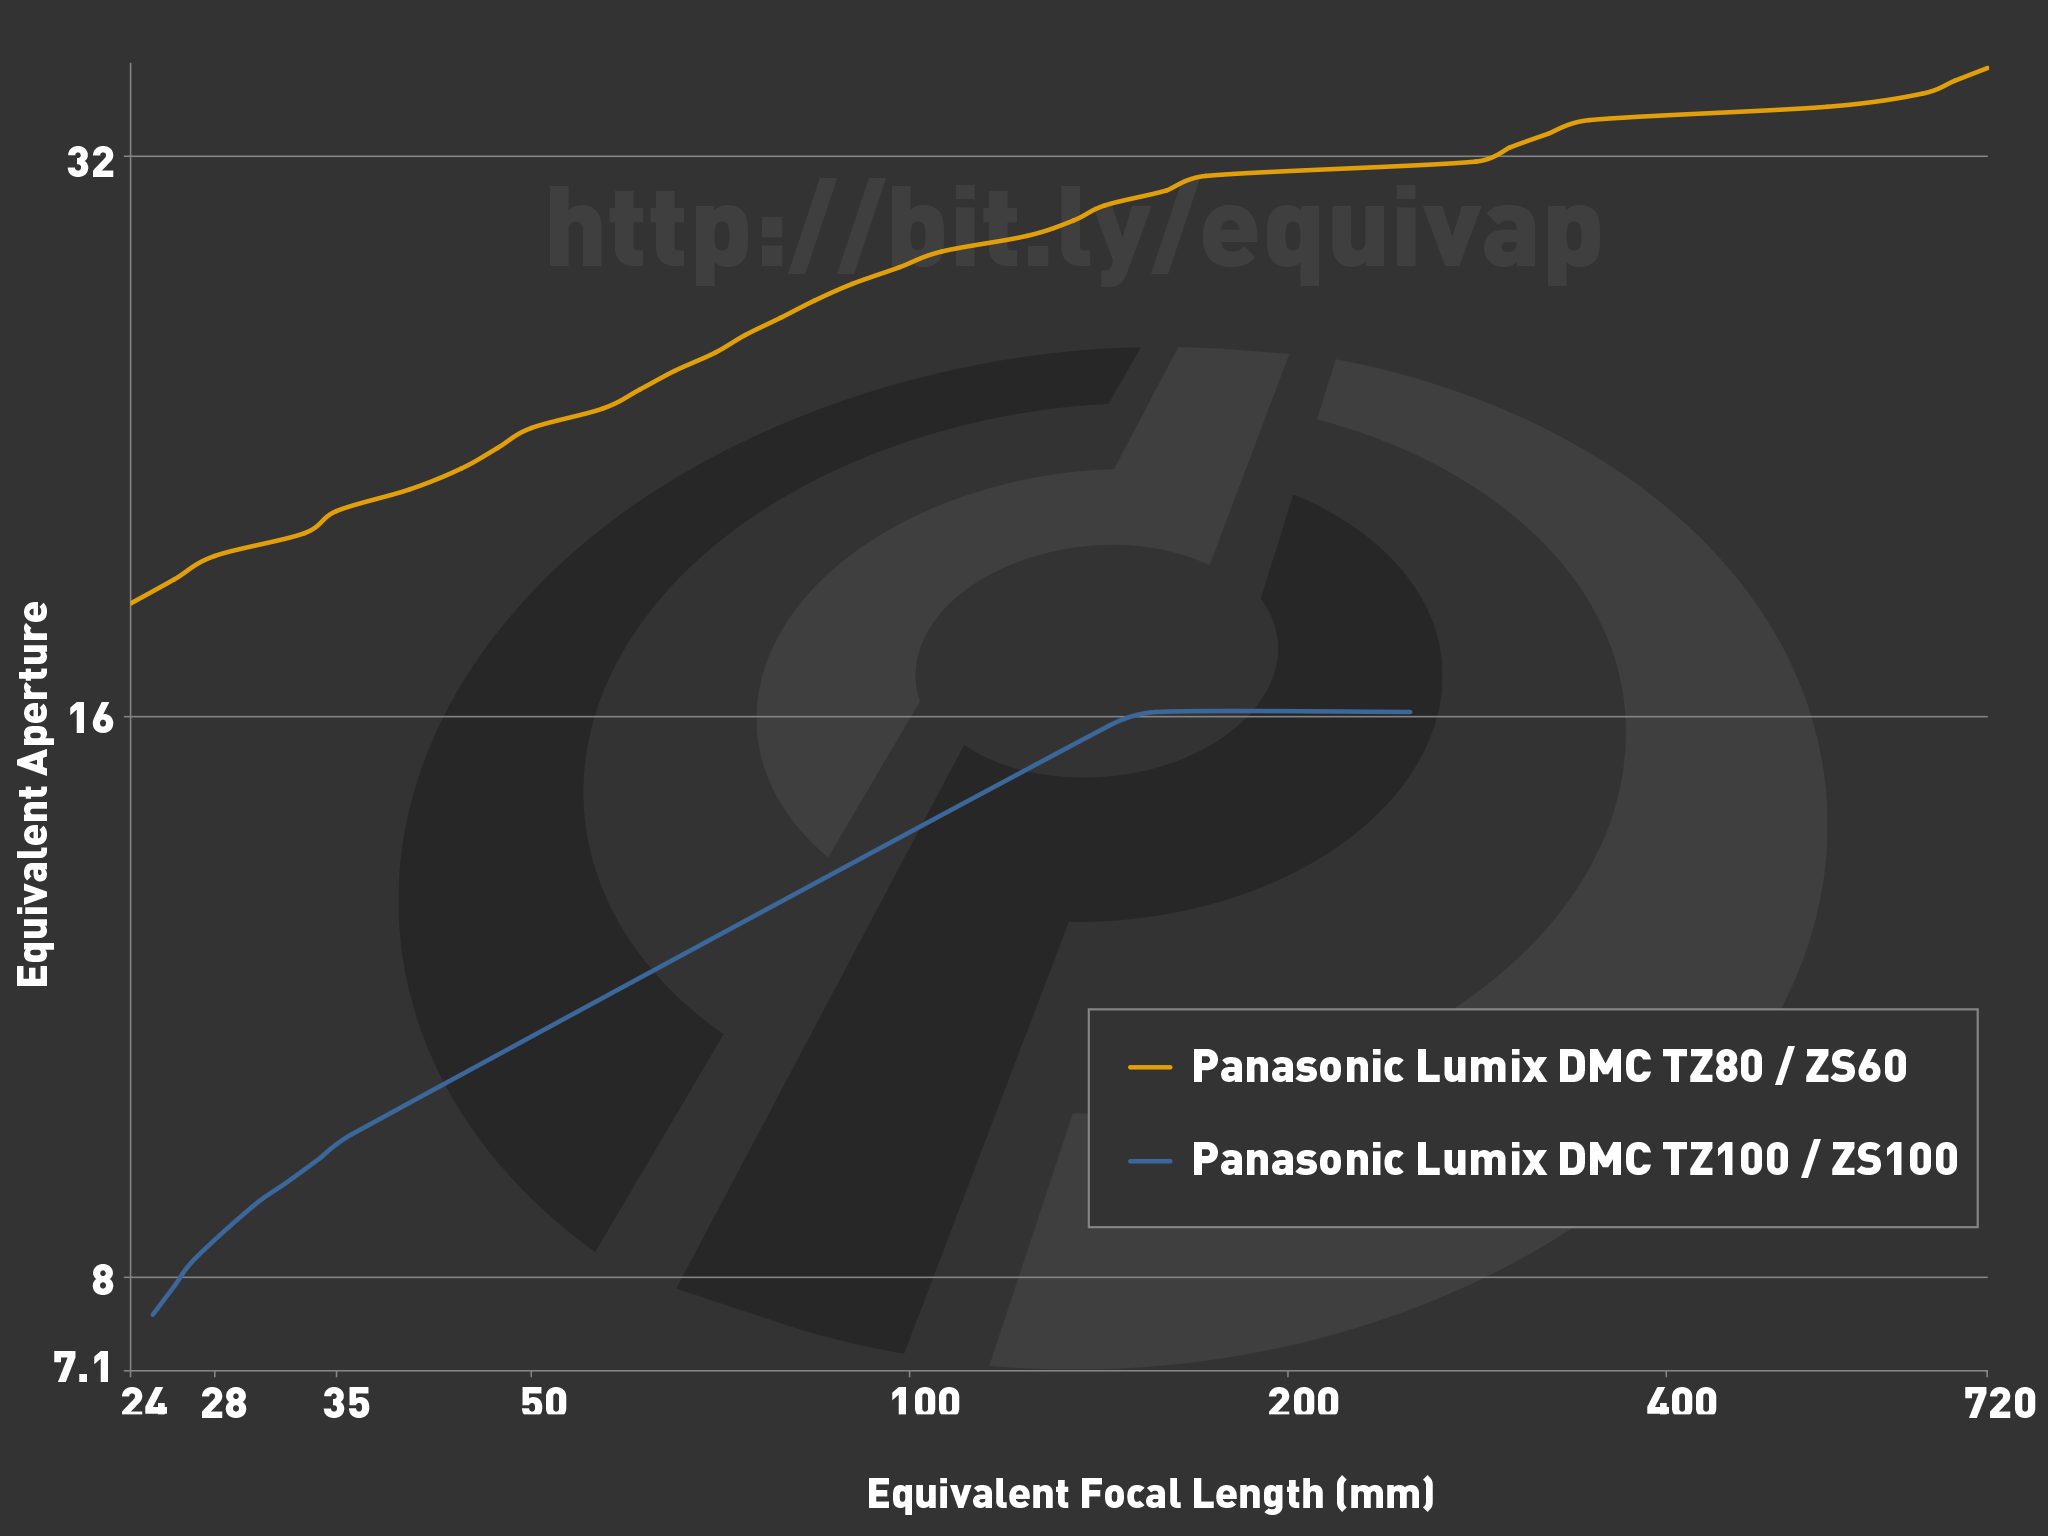 Panasonic Lumix Dmc Zs100 Tz100 Review Digital Photography Flashdisk V Gen Astro 64 Gb 20 Original Above Is A Graph Showing Equivalent Aperture Vs Focal Length Which Described In Detail Here The Yellow Line At Top Zs60 1 23